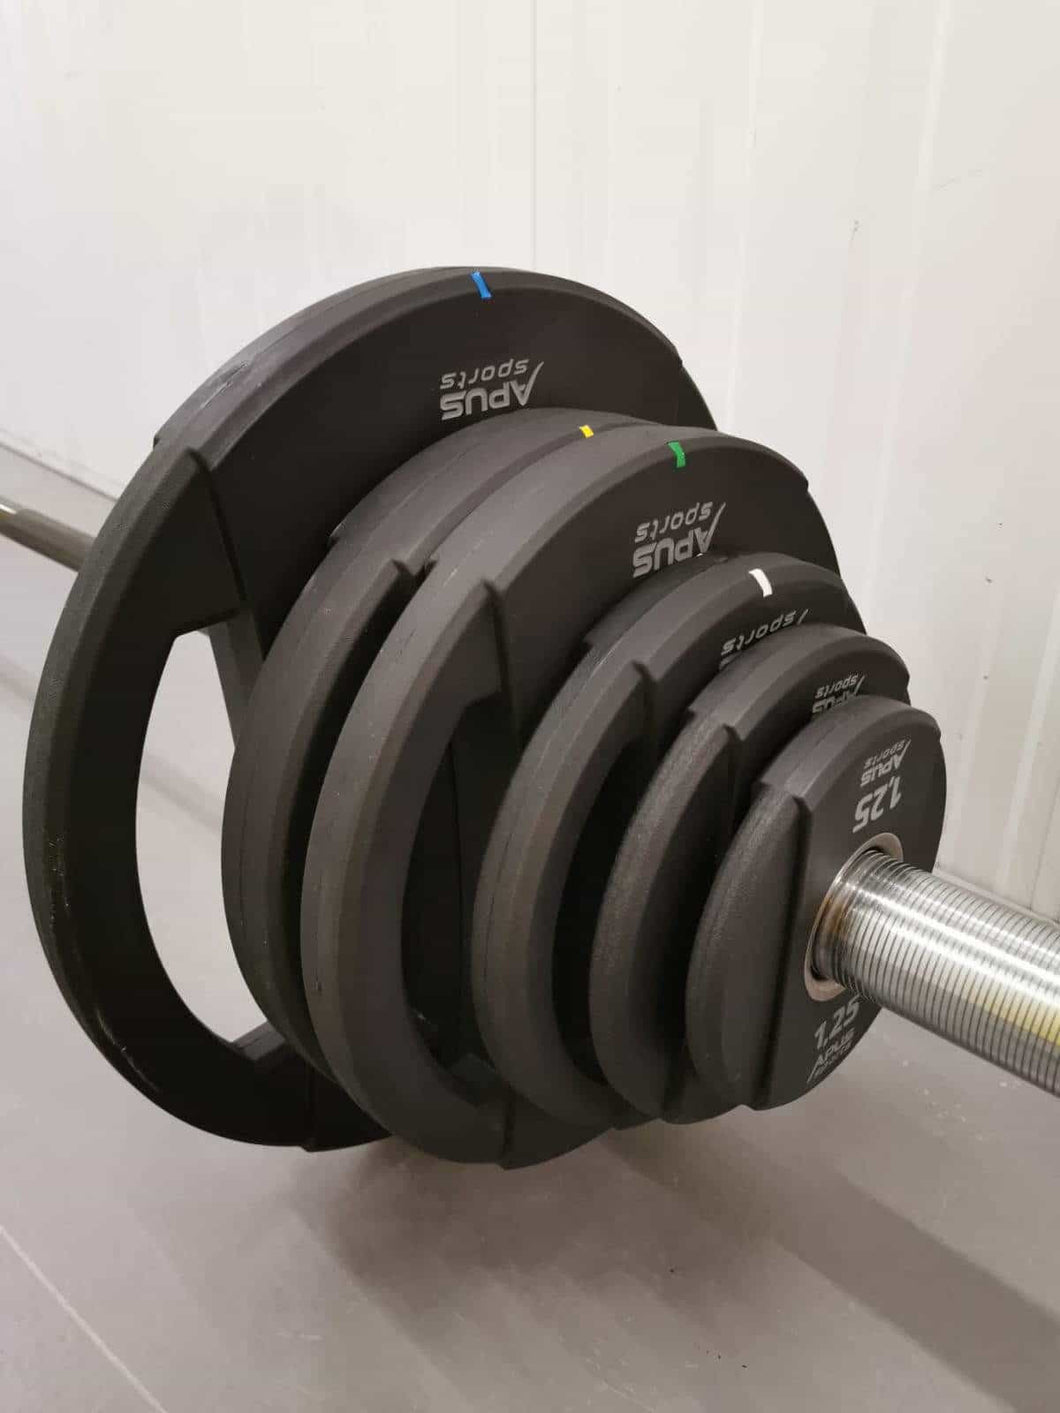 160kg (6x5kg 2x15kg 2x10kg 4x20kg ) + Olympic Bar DEAL - IRON-STRENGTH.CO.UK